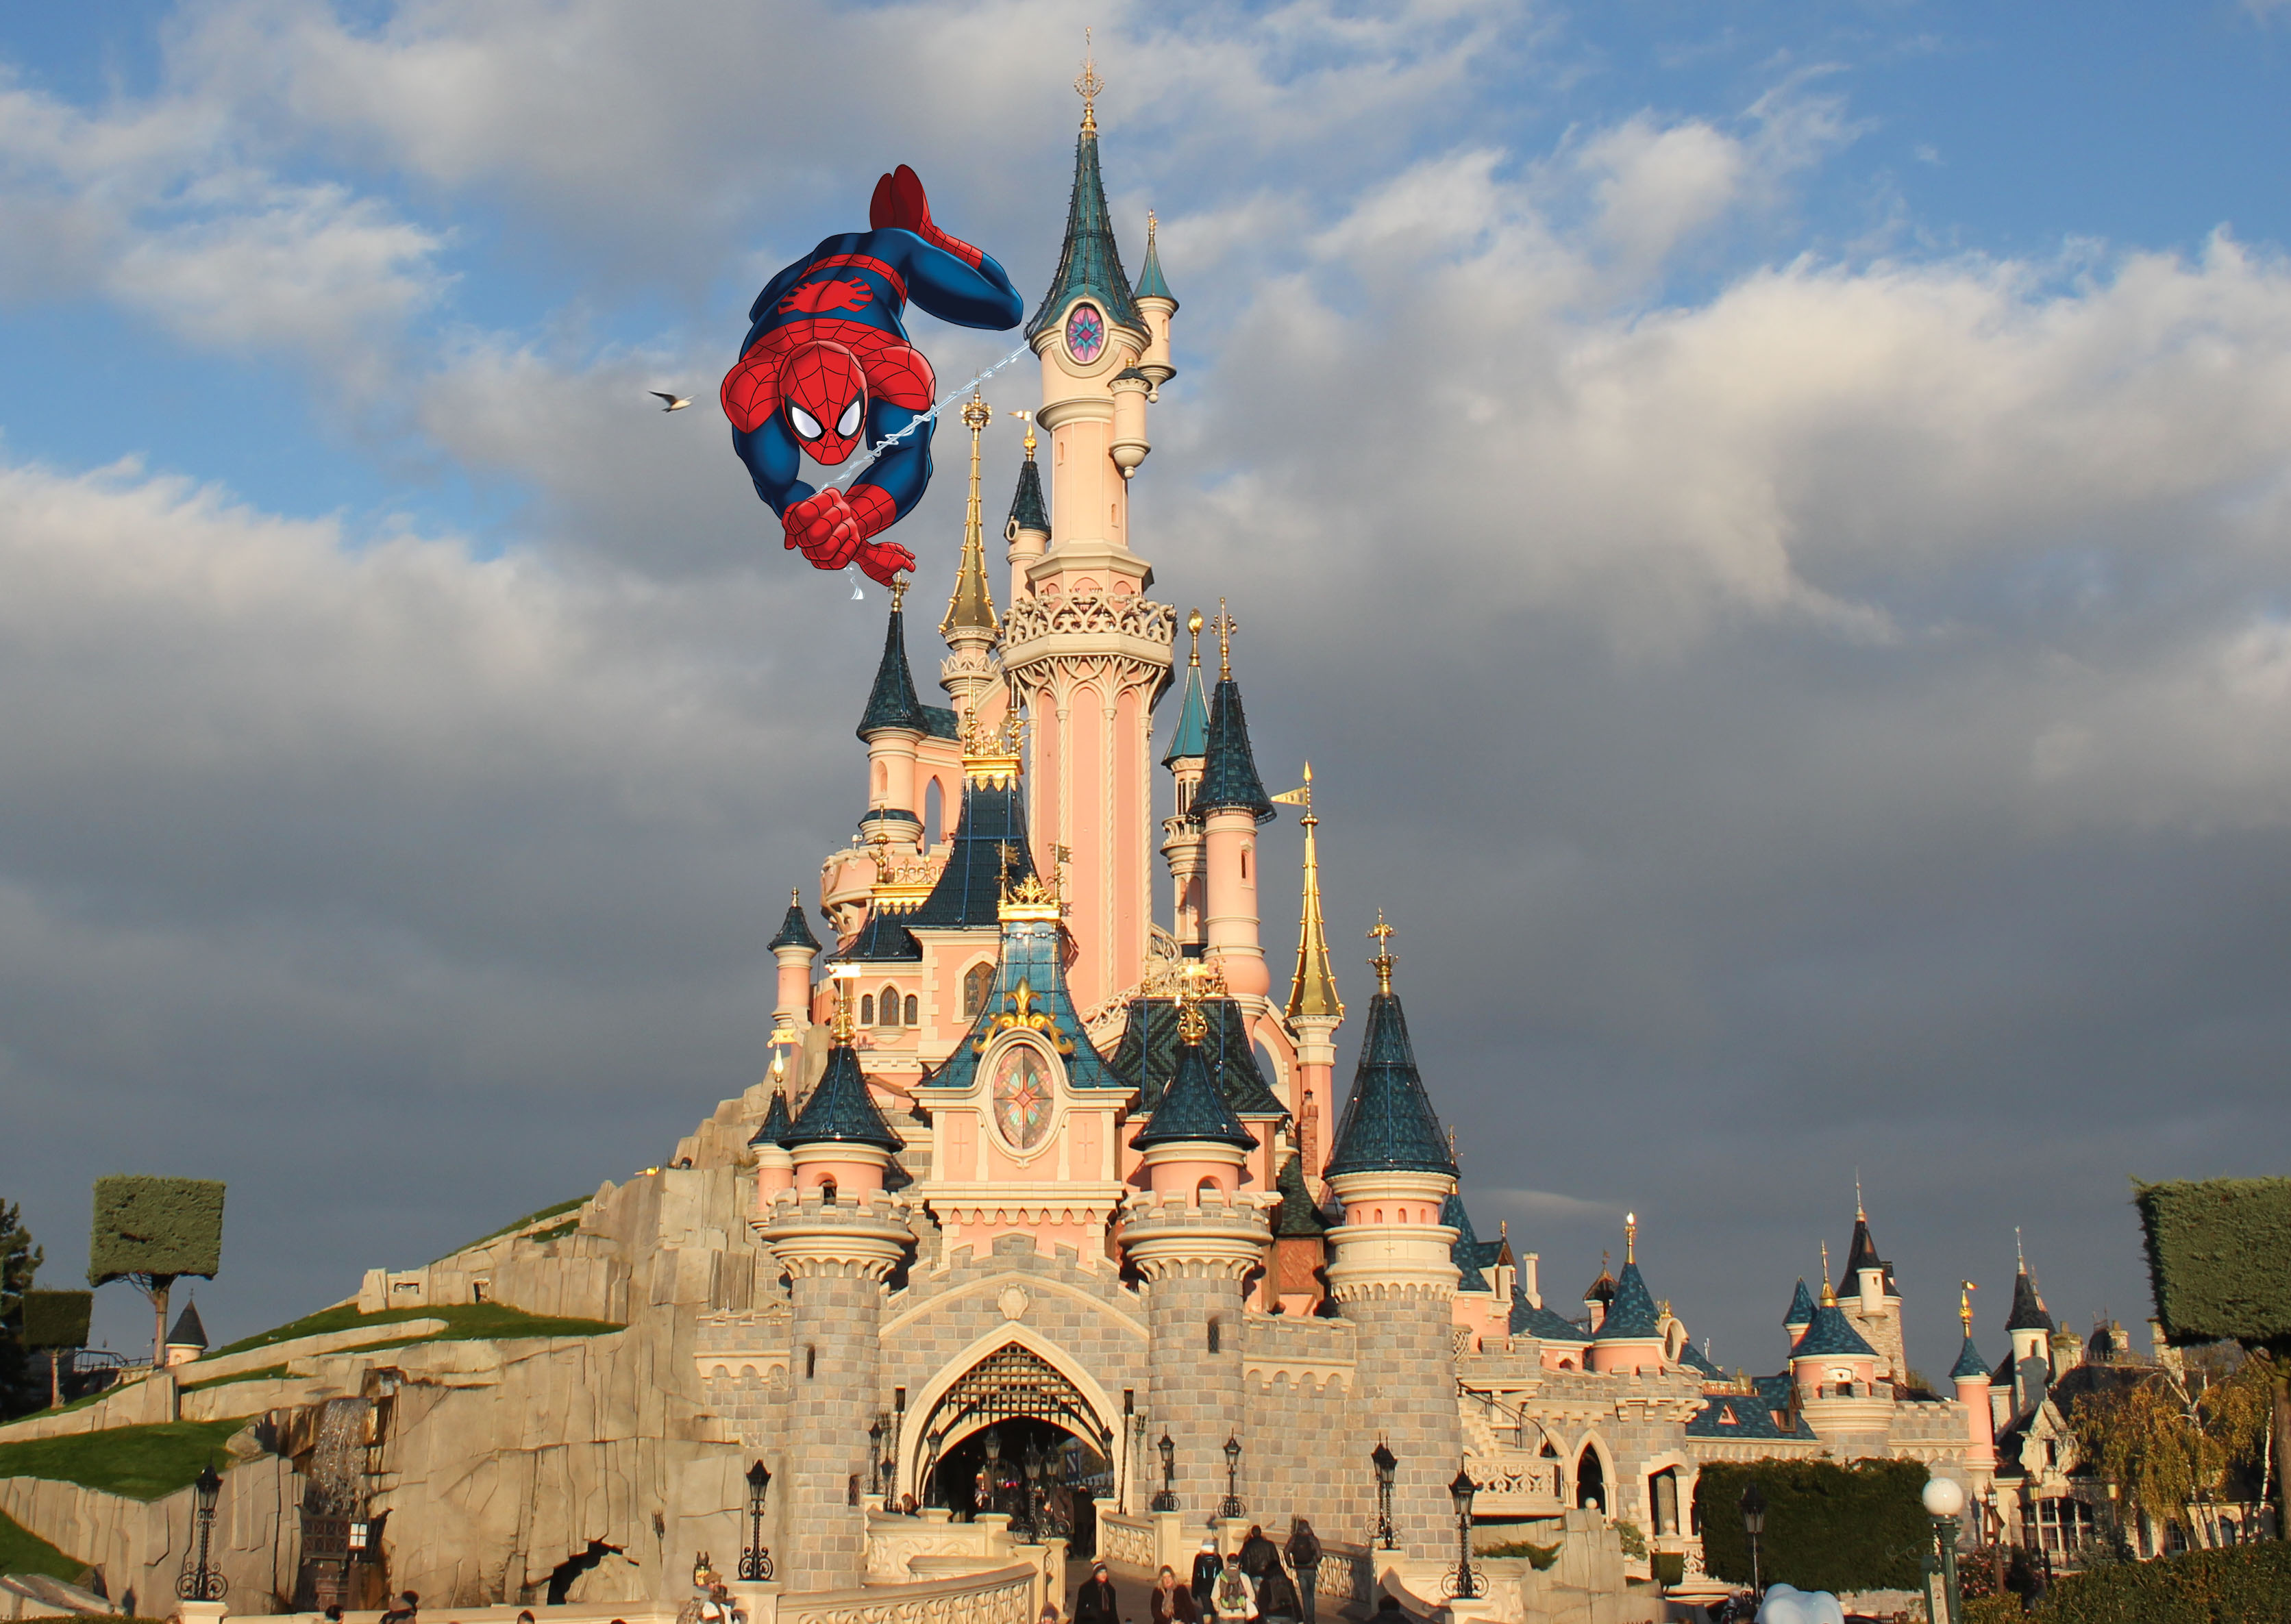 Spider-Man on Disneyland Paris' castle